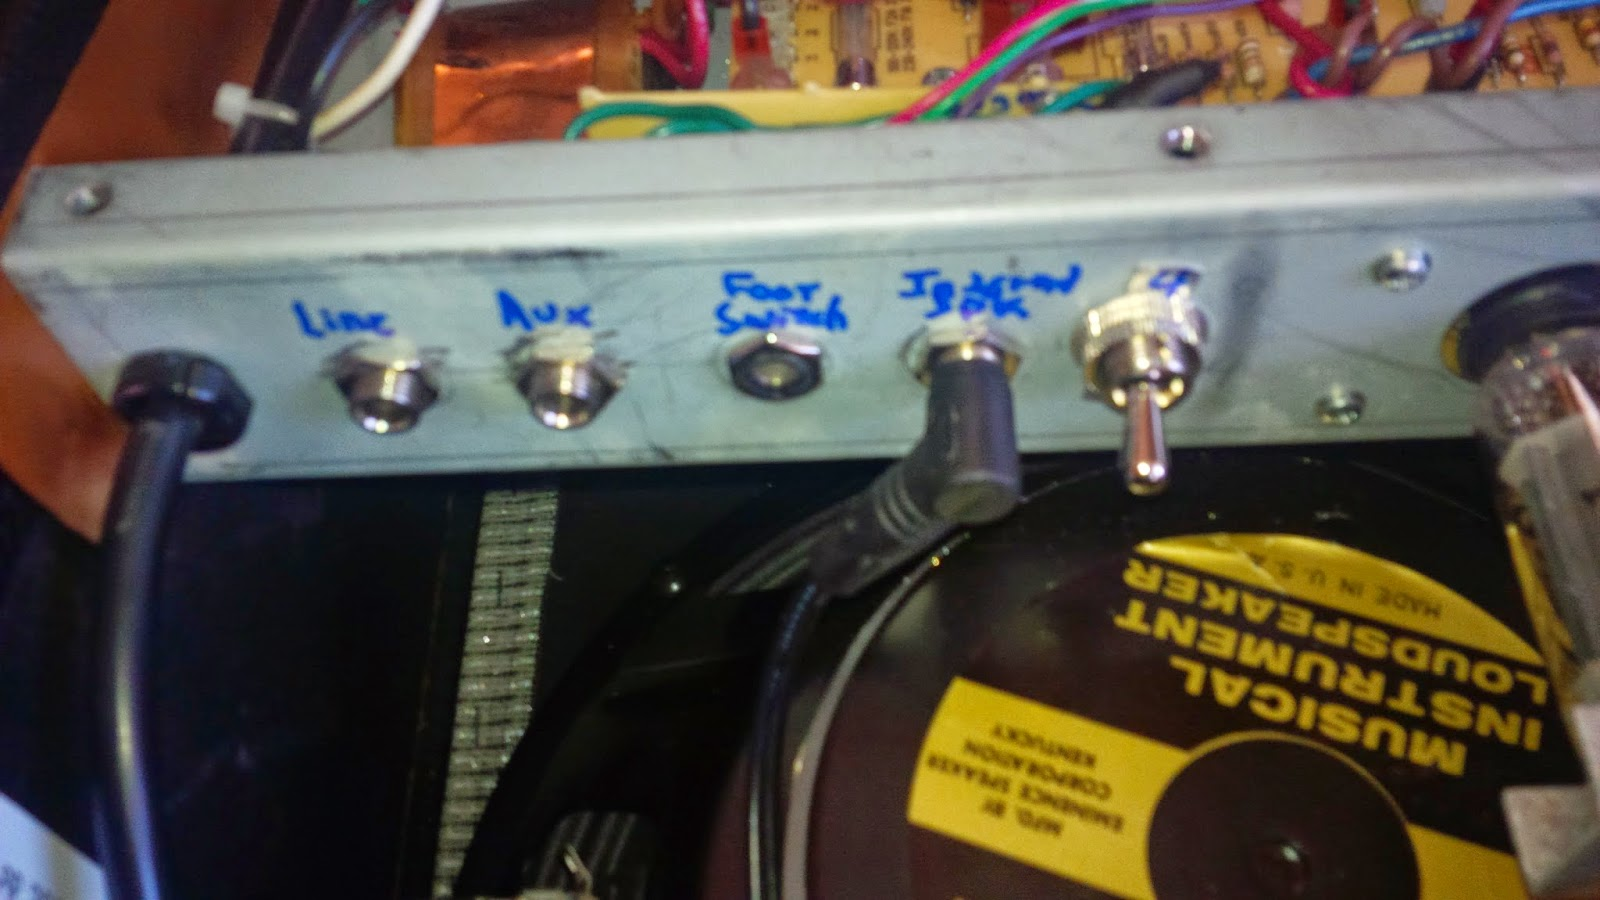 Blues Jr Input Jack Wiring Diagram Electrical Diagrams Fender Junior Jw Guitarworks Amplifier Modification